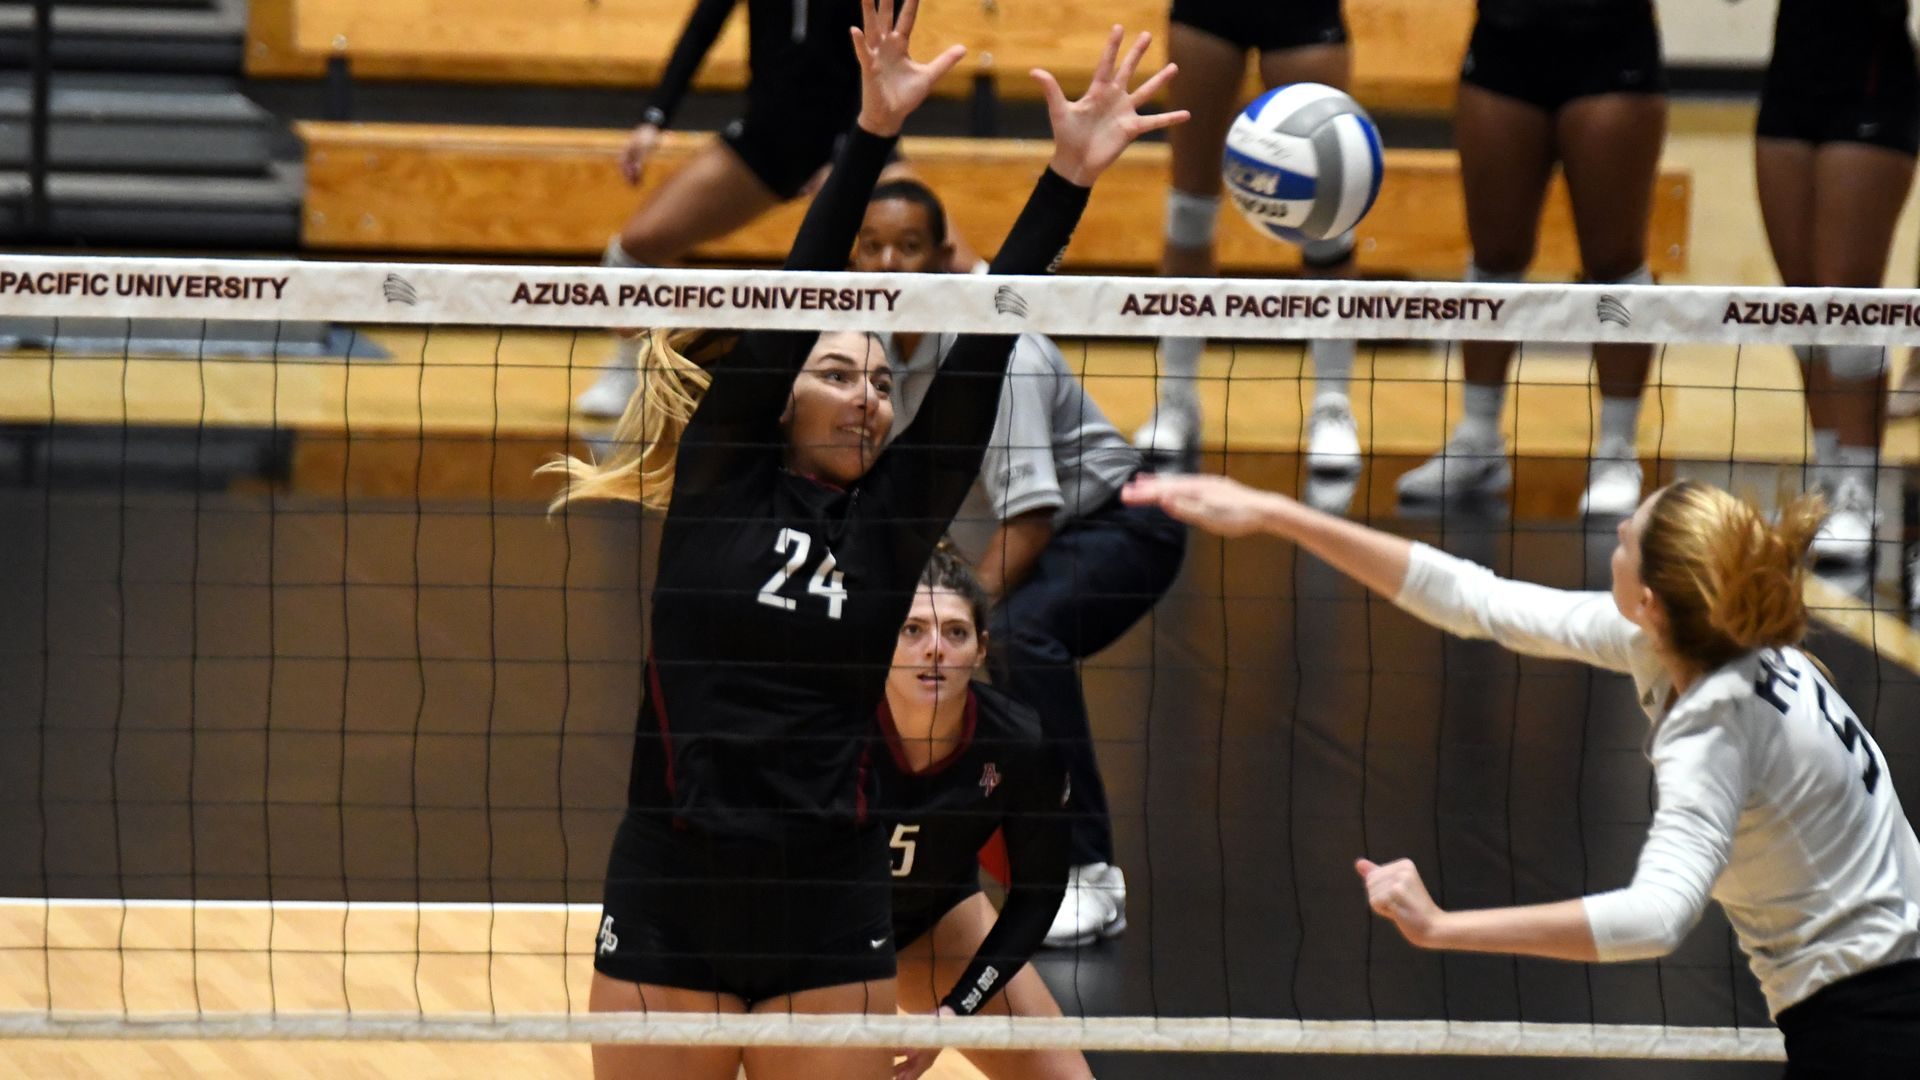 Azusa Pacific Volleyball Outside Hitter Katarina Radisic Jumps At The Net For A Block During The Cougars Four Set Azusa Pacific Azusa Pacific University Azusa